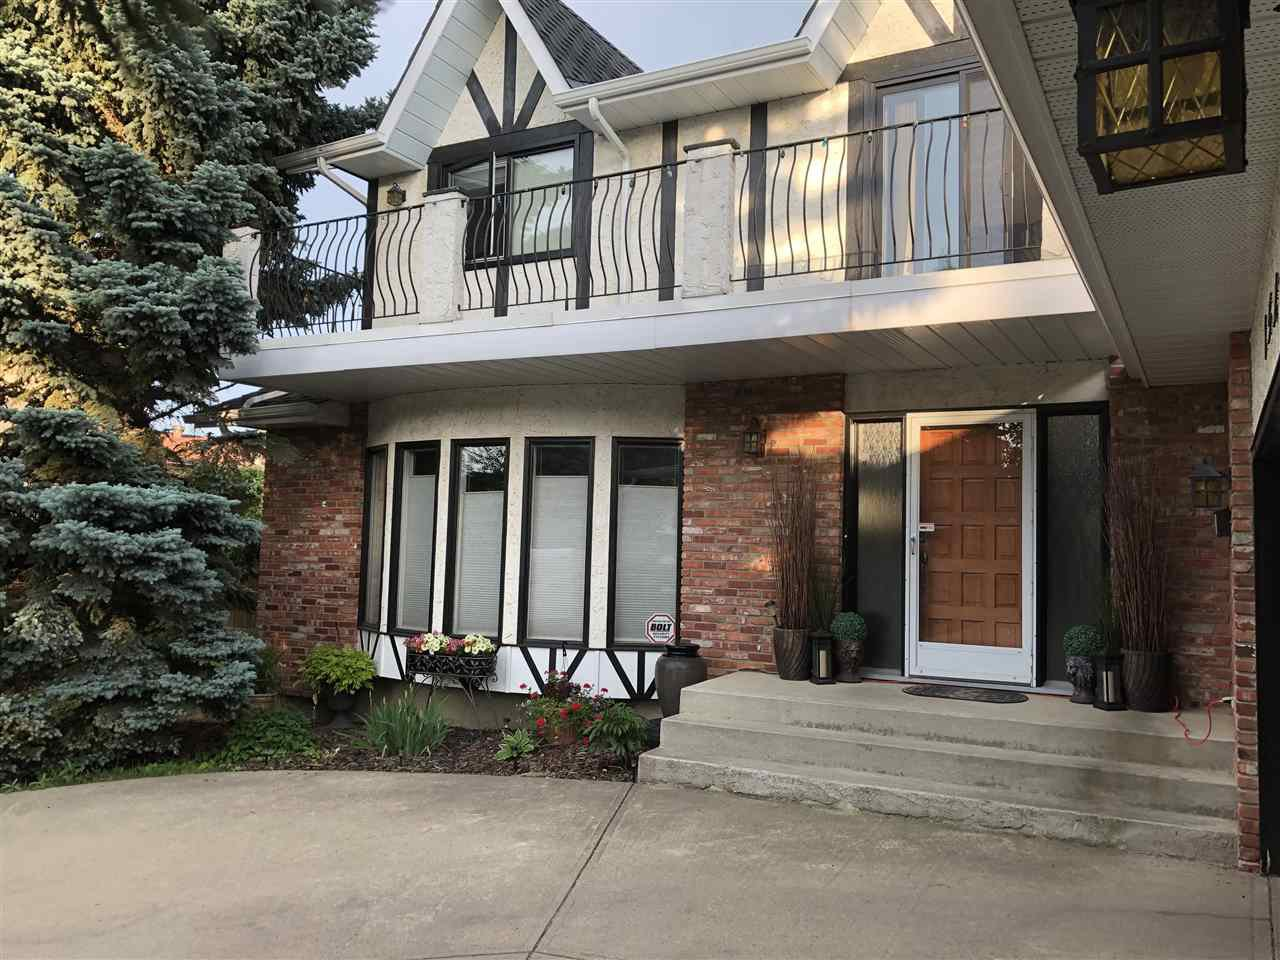 Main Photo: 15219 43 Avenue in Edmonton: Zone 14 House for sale : MLS®# E4200494